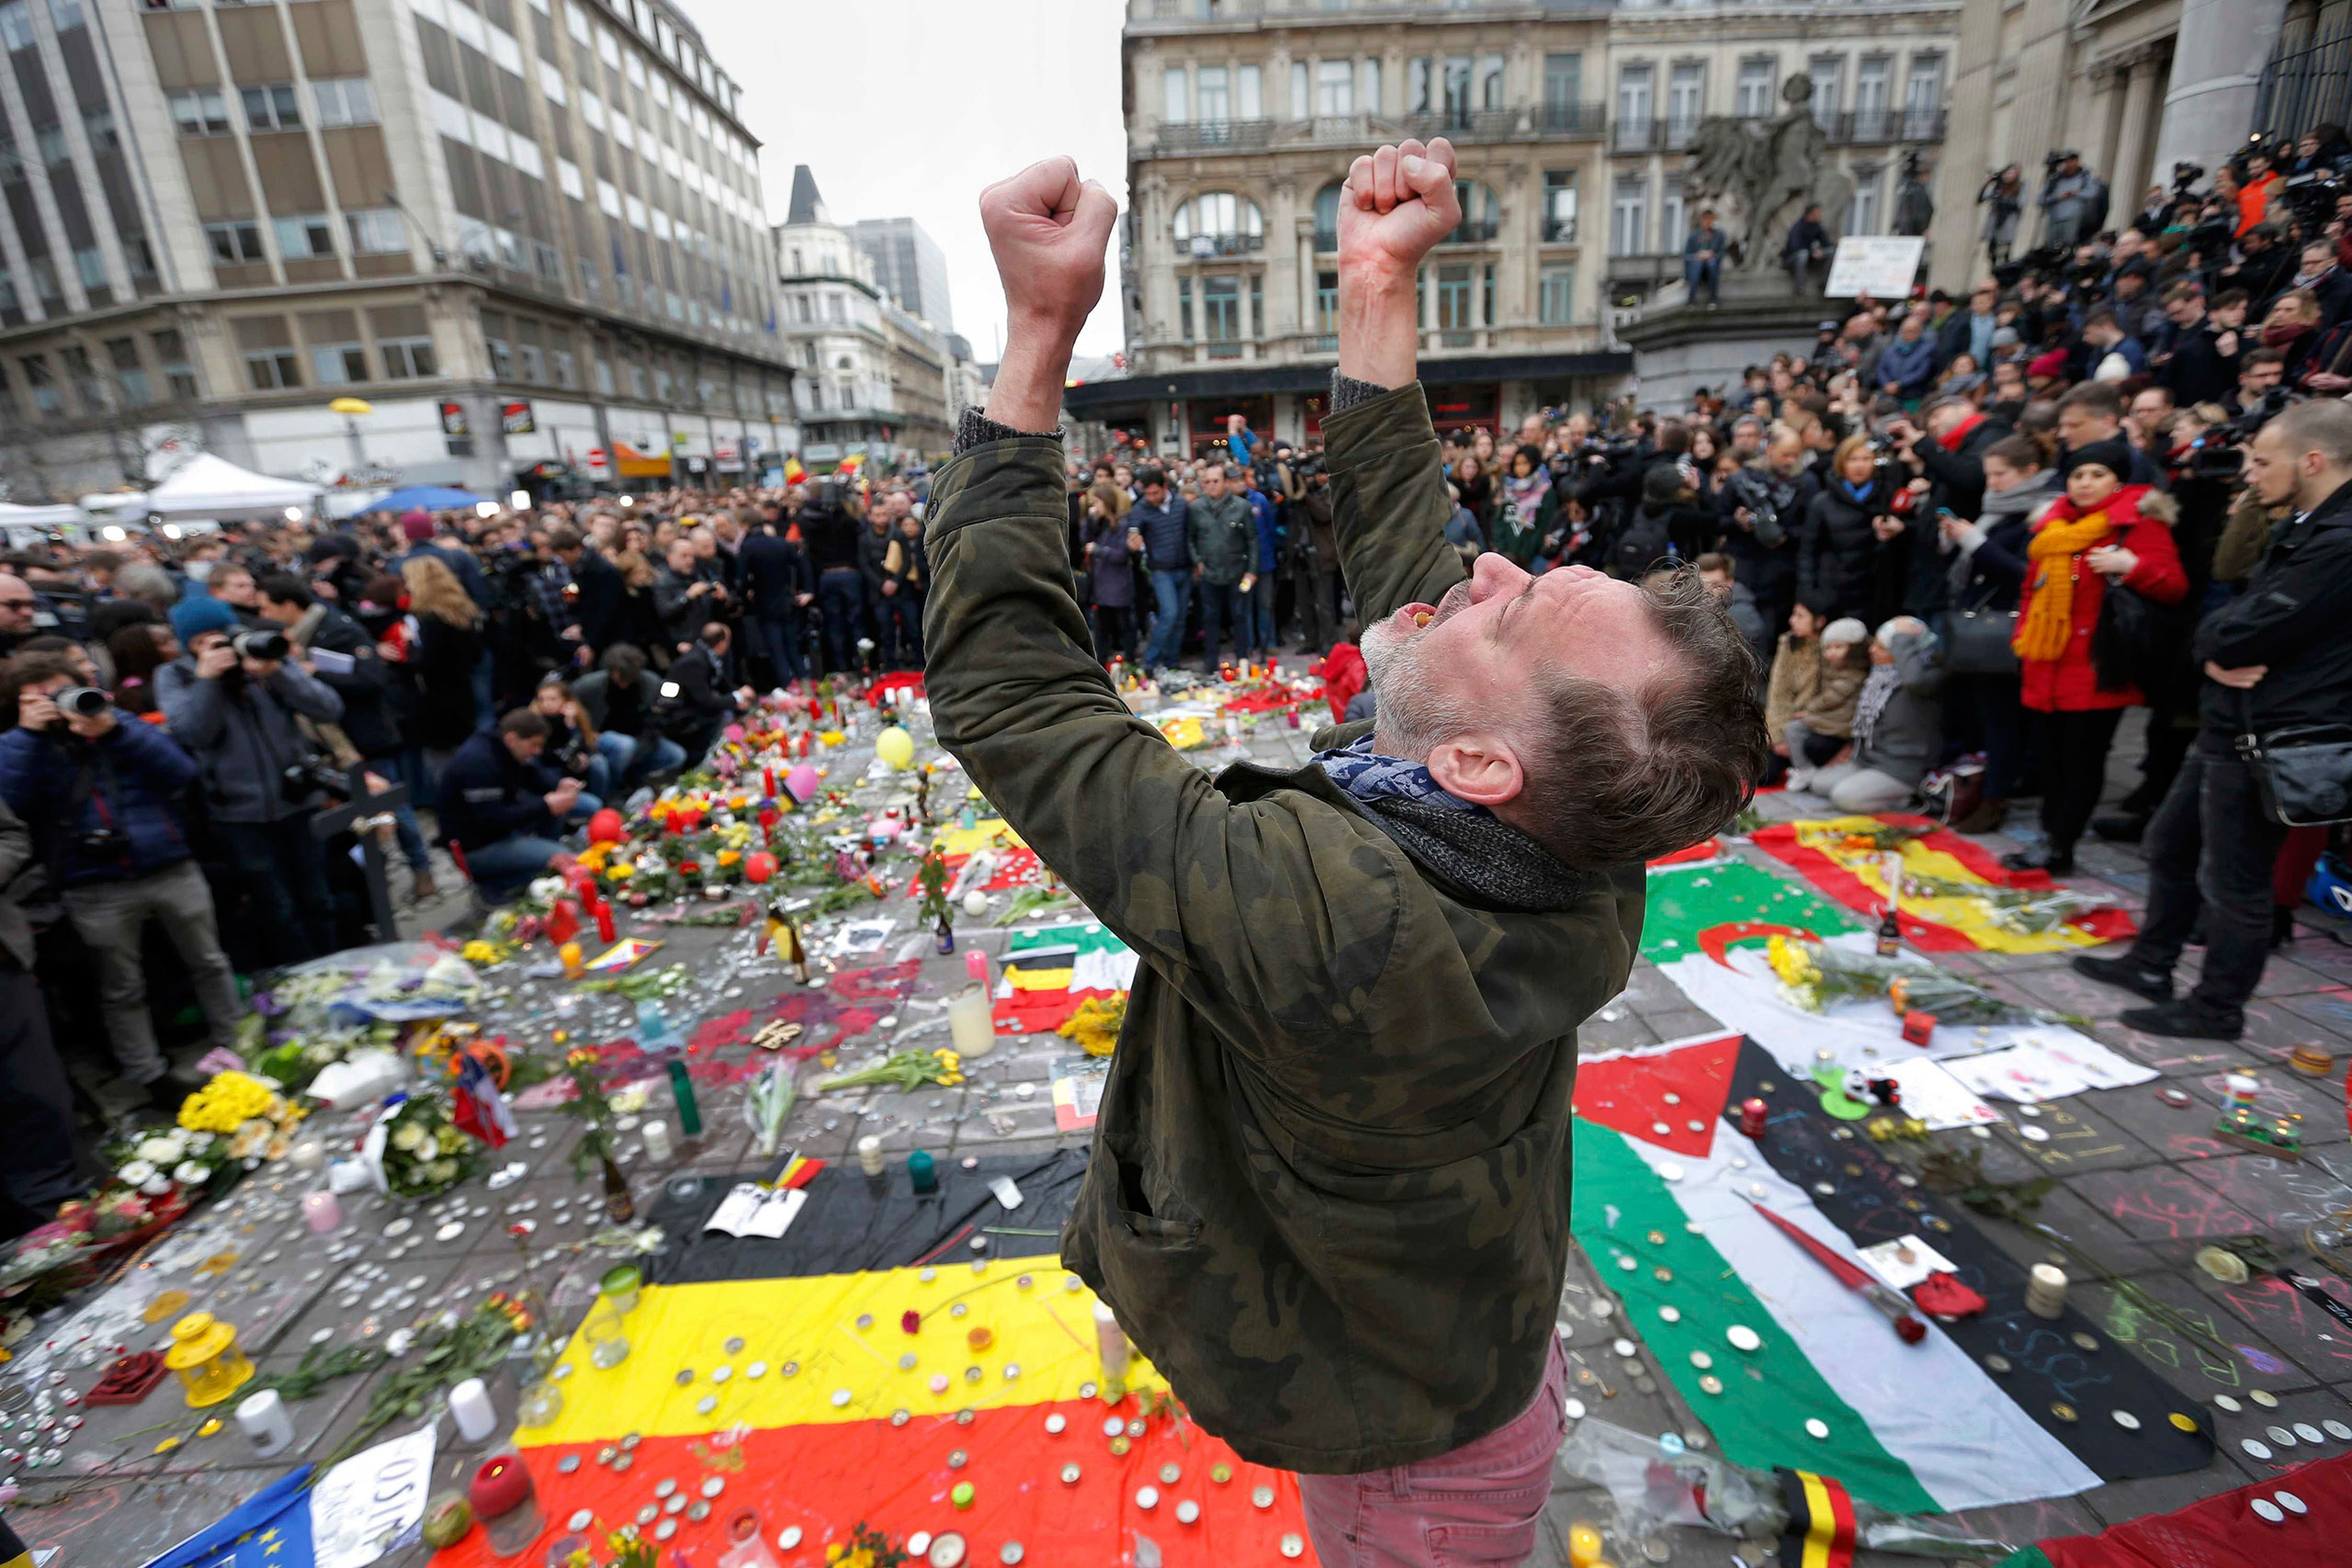 A man reacts at a street memorial following Tuesday's bomb attacks in Brussels, Belgium, March 23, 2016.